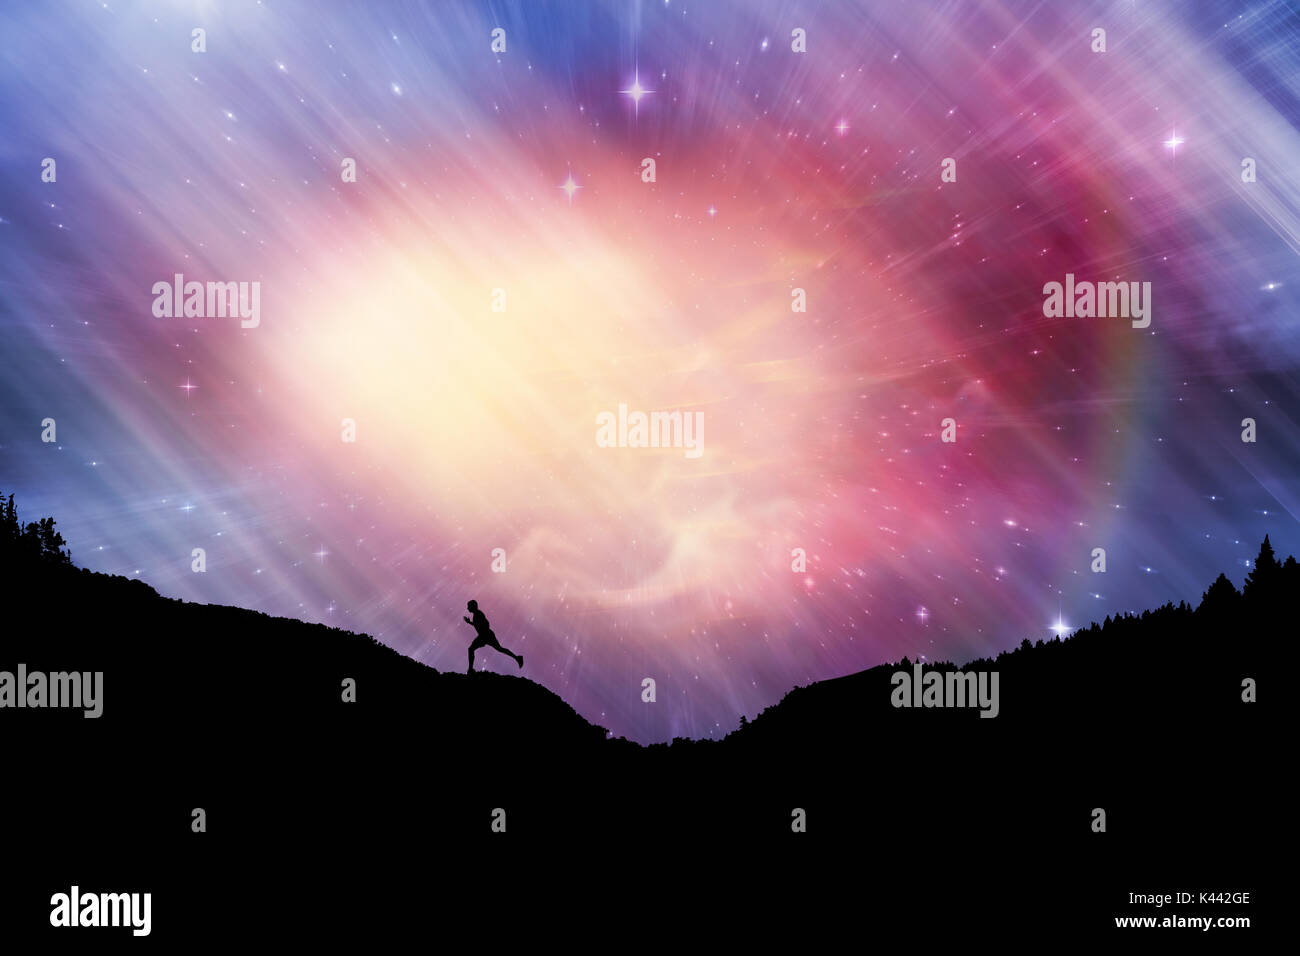 Male runner running against outer space - Stock Image